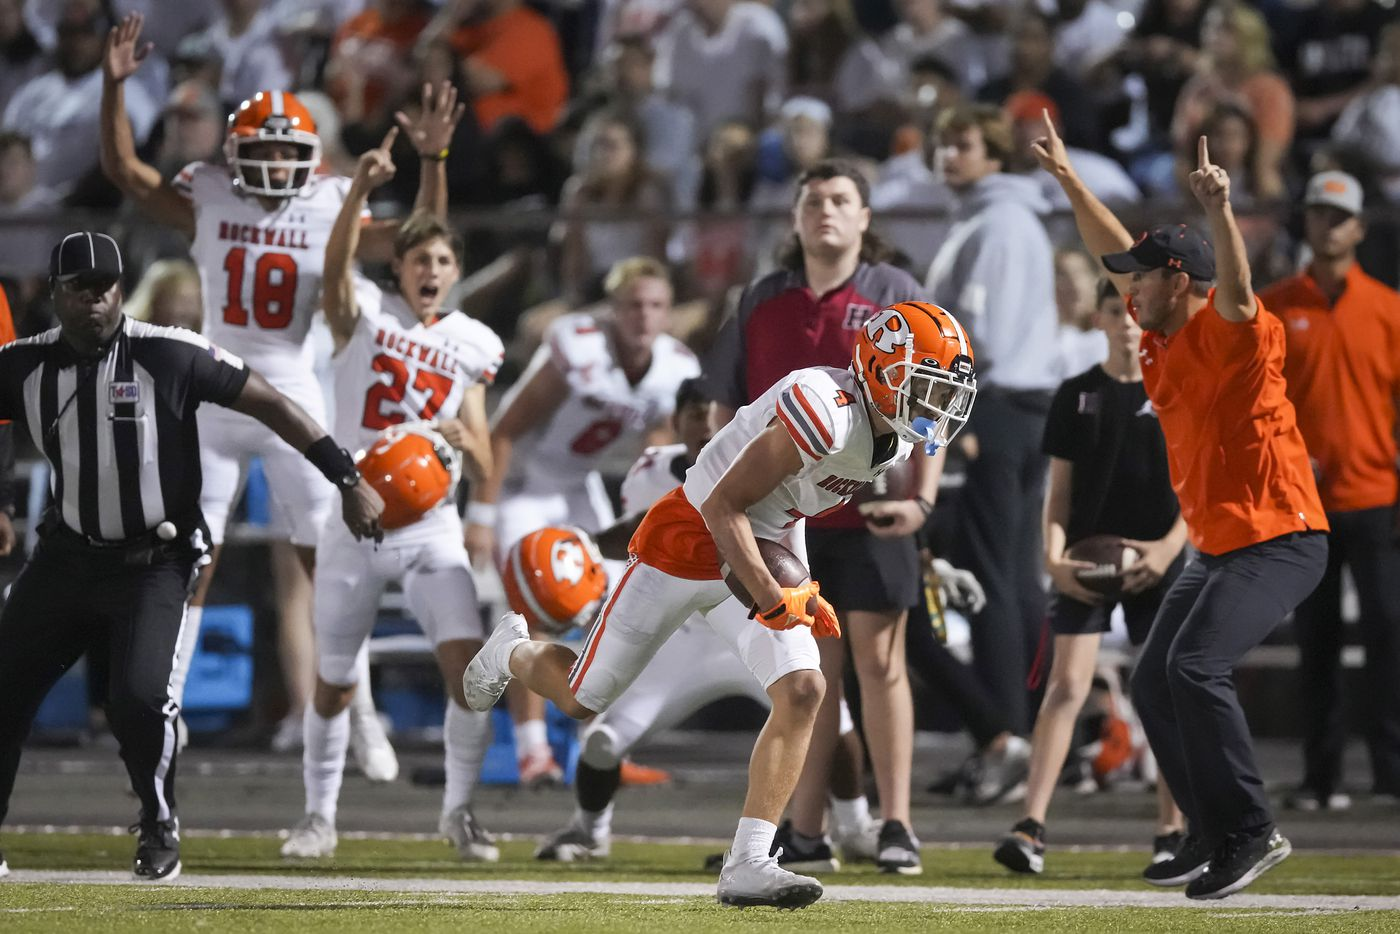 The Rockwall bench erupts as defensive back Tre Carter (4) recovers an onside kick during the second half of a District 10-6A high school football game against Rockwall-Heath at Wilkerson-Sanders Stadium on Friday, Sept. 24, 2021, in Rockwall.  Rockwall-Heath won the game 79-71 in double overtime.